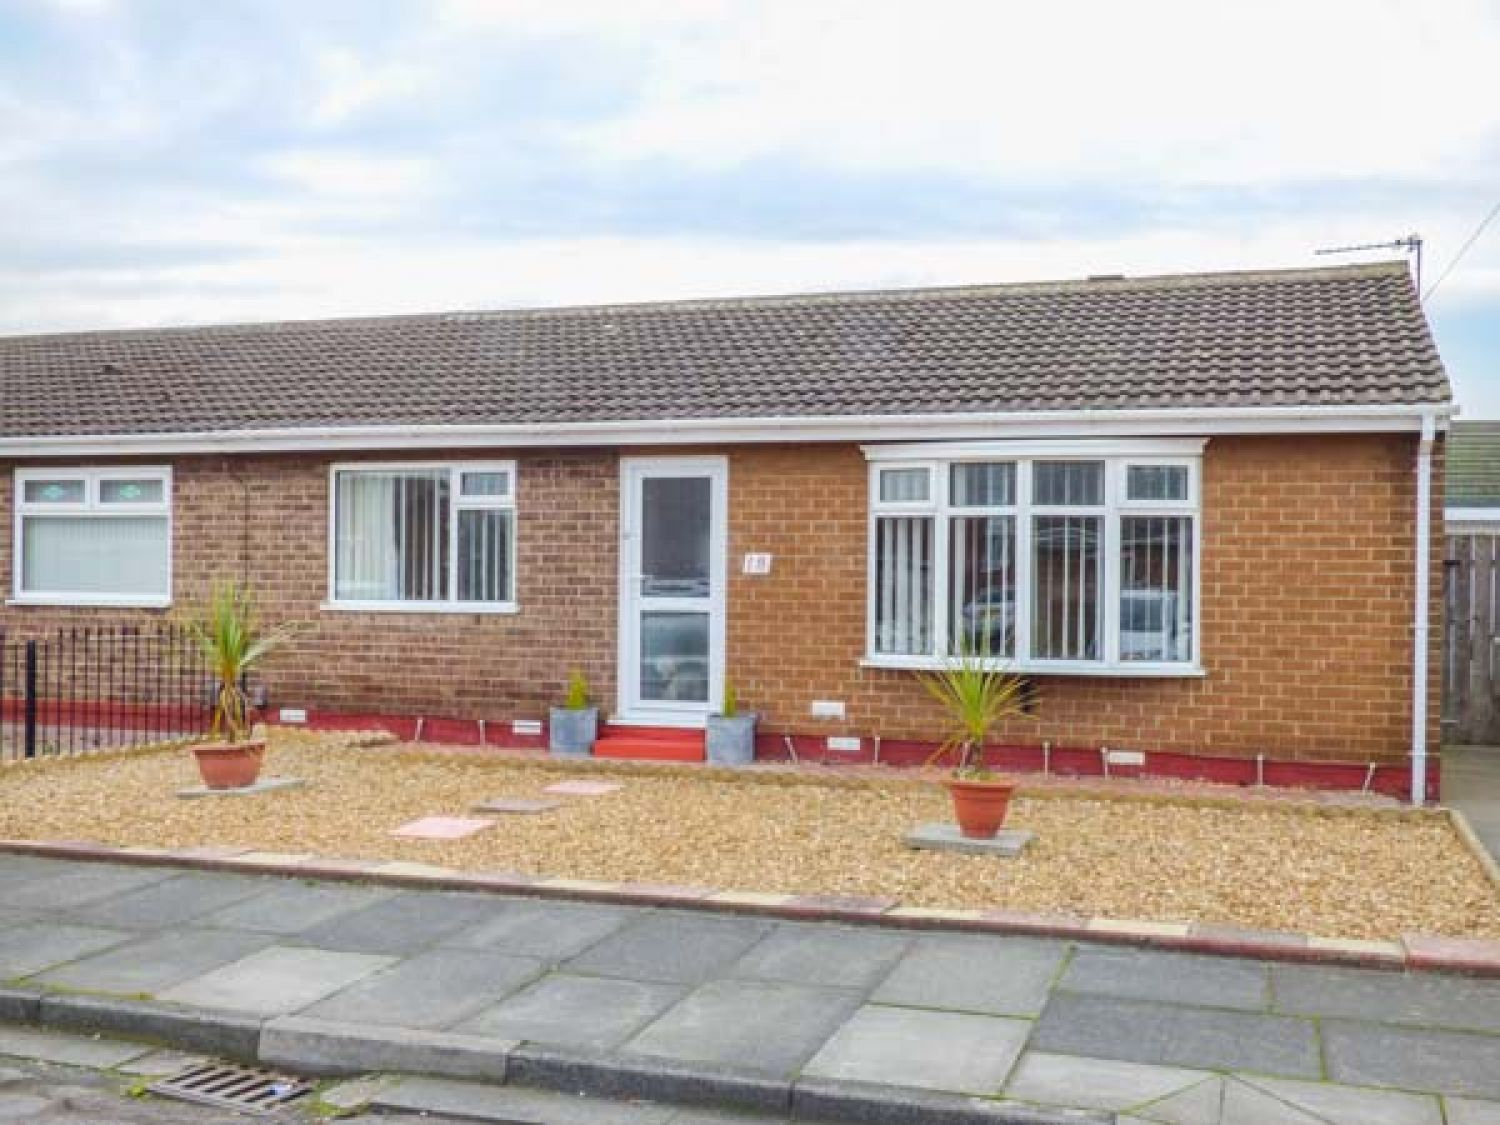 18 Cherry Tree Gardens - Whitby & North Yorkshire - 950994 - photo 1